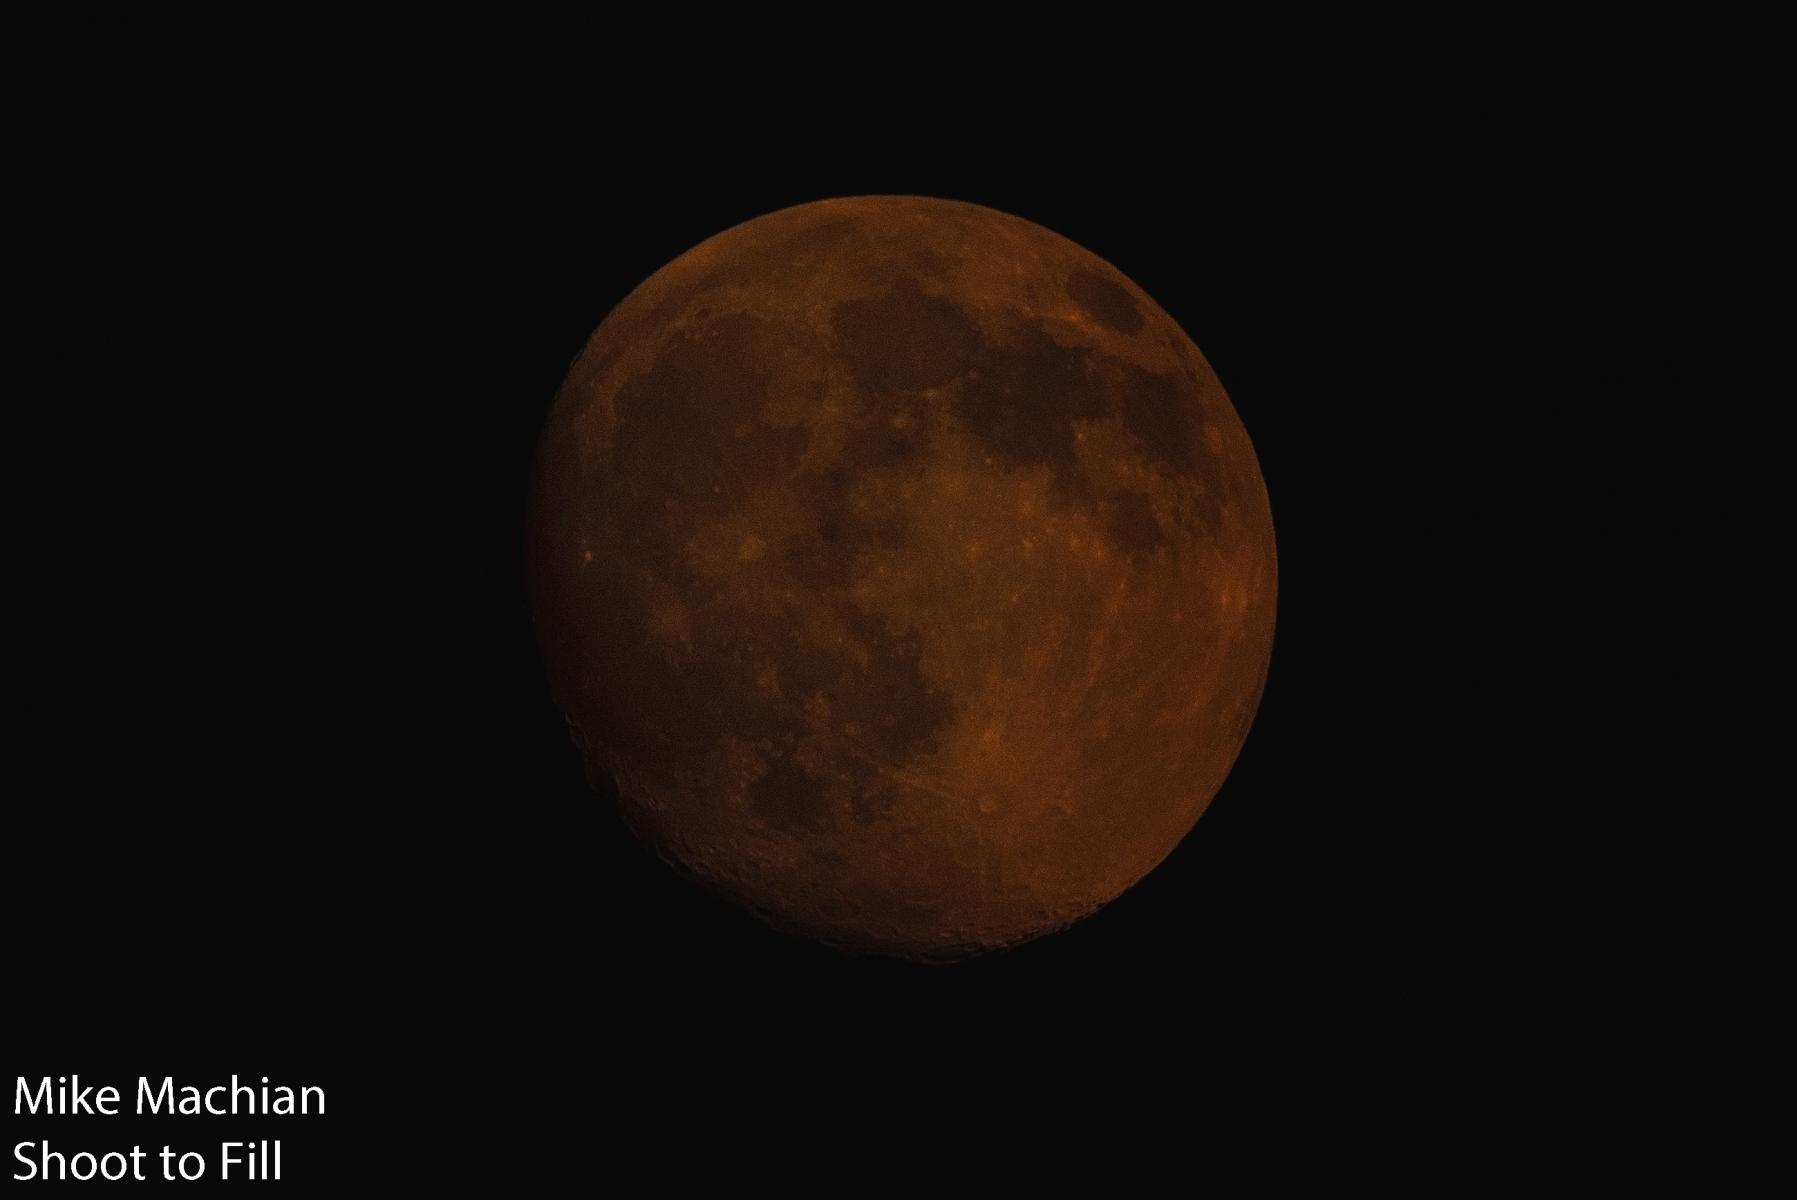 Moon reddened by the wildfire haze